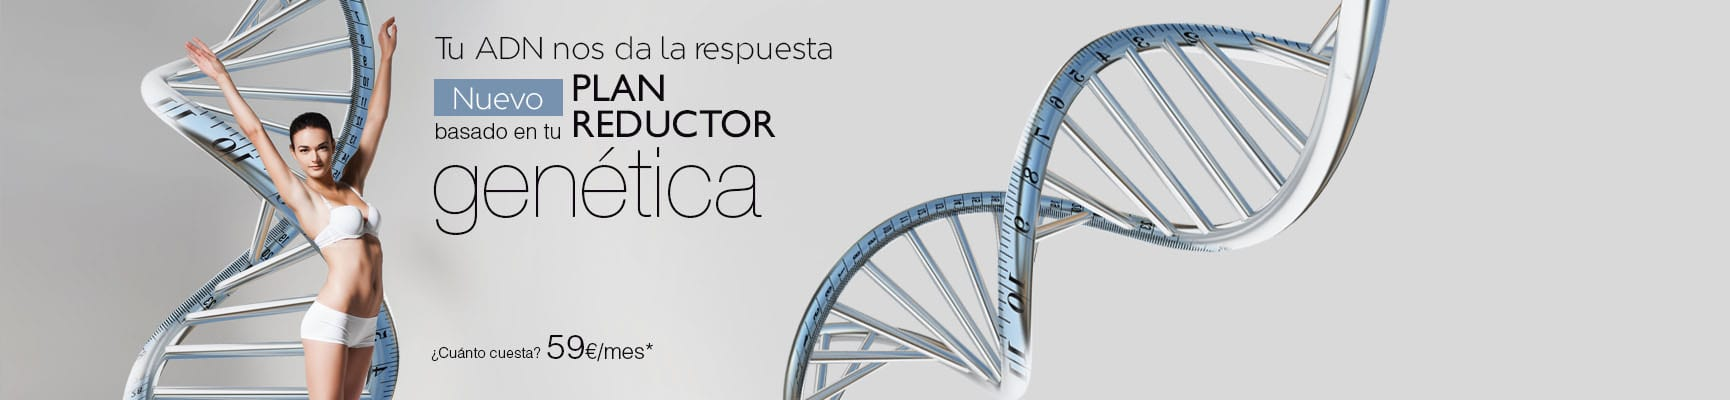 Reductor genetico Frontpage